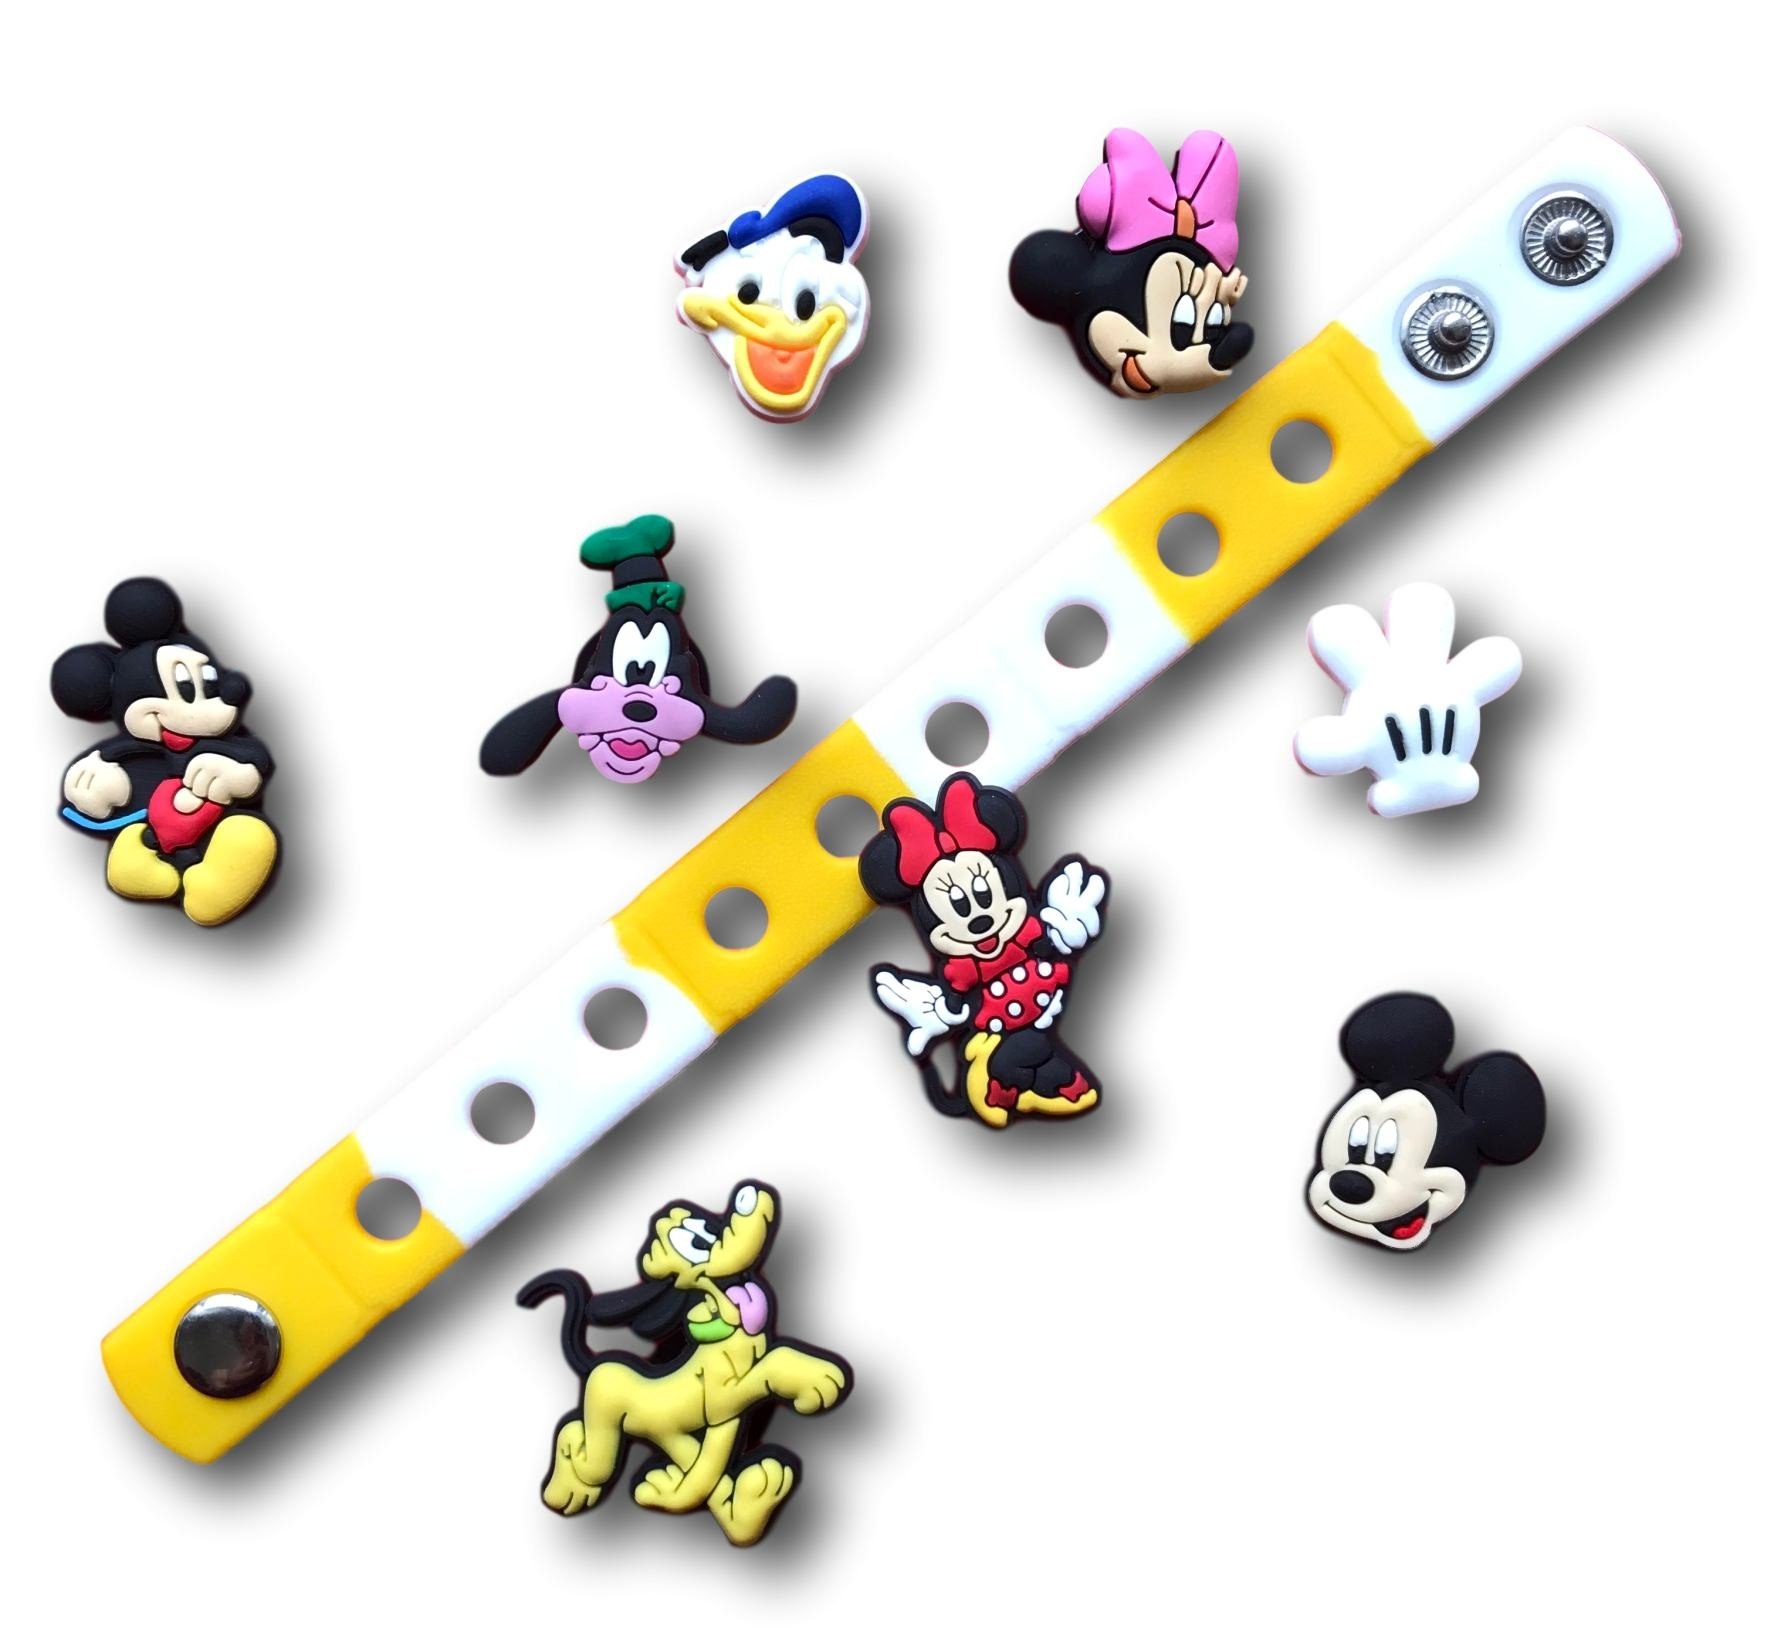 Jibbitz for Crocs Shoes| Shoe Charms for Crocs & Bracelet Wristband by Nenistore| Disney (8pcs) FREE 01 Silicone Wristband 7 Inches (with Pluto and Goofy)